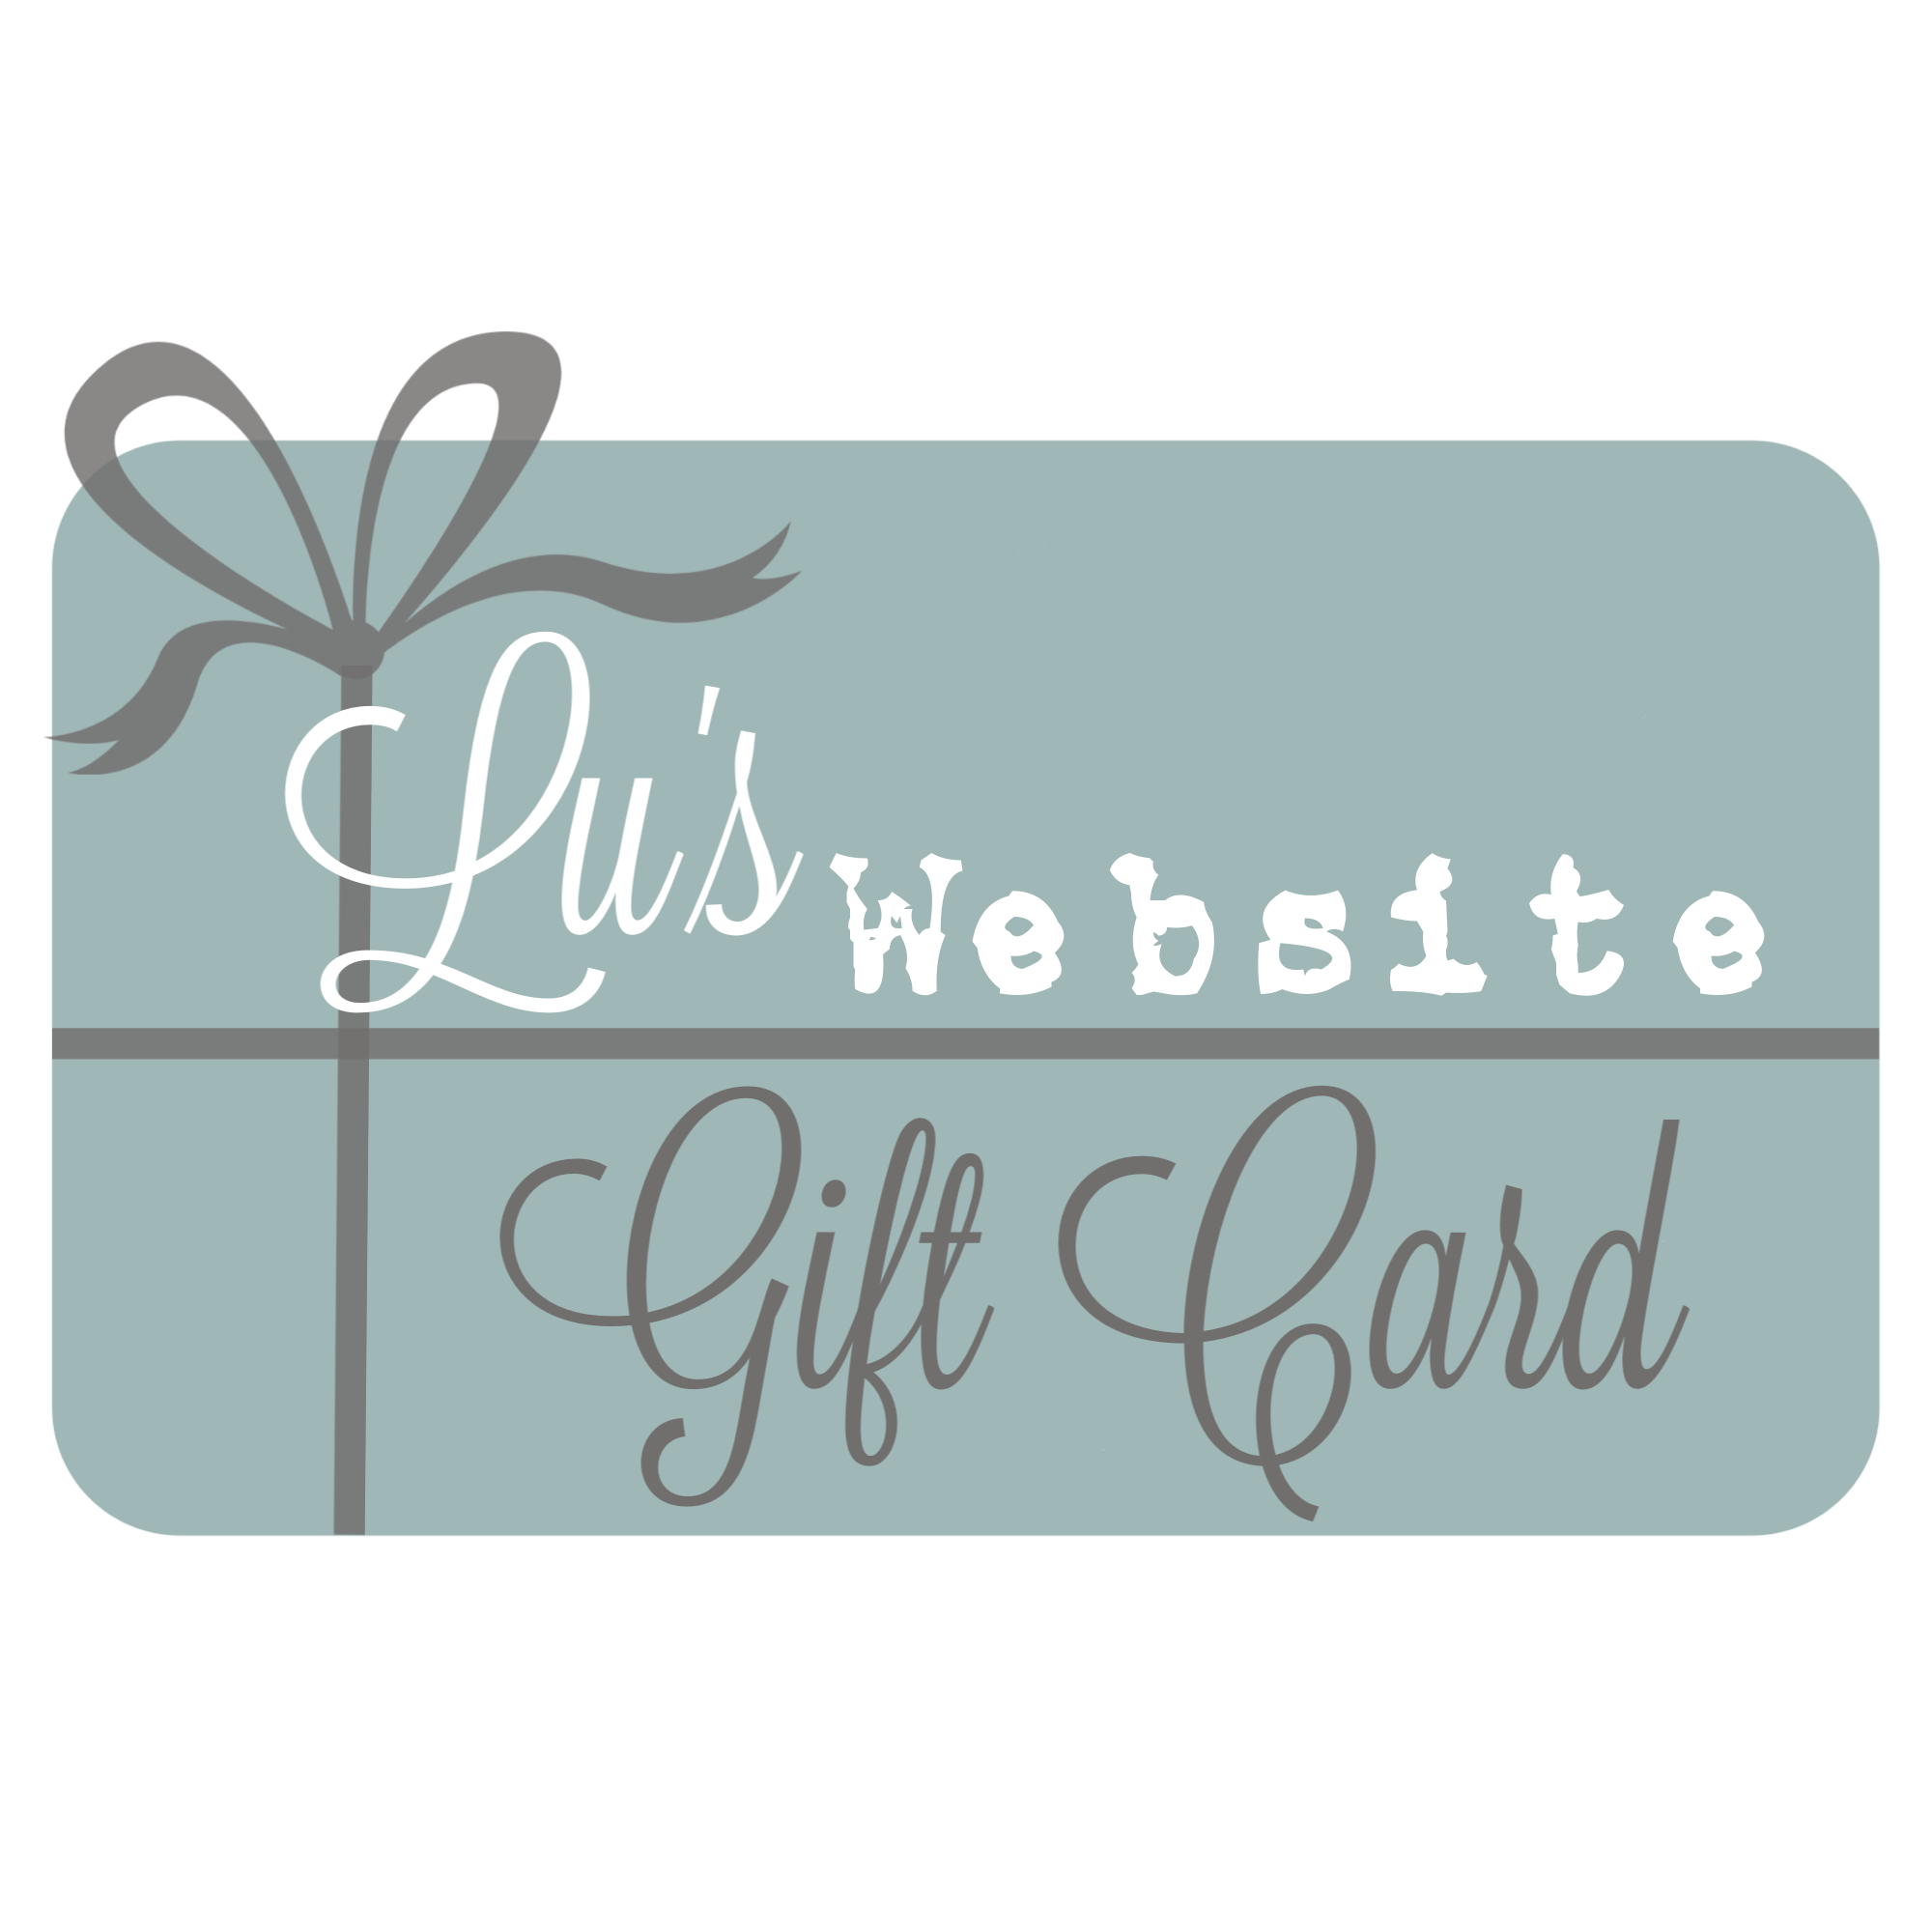 Lu's Website Gift Card